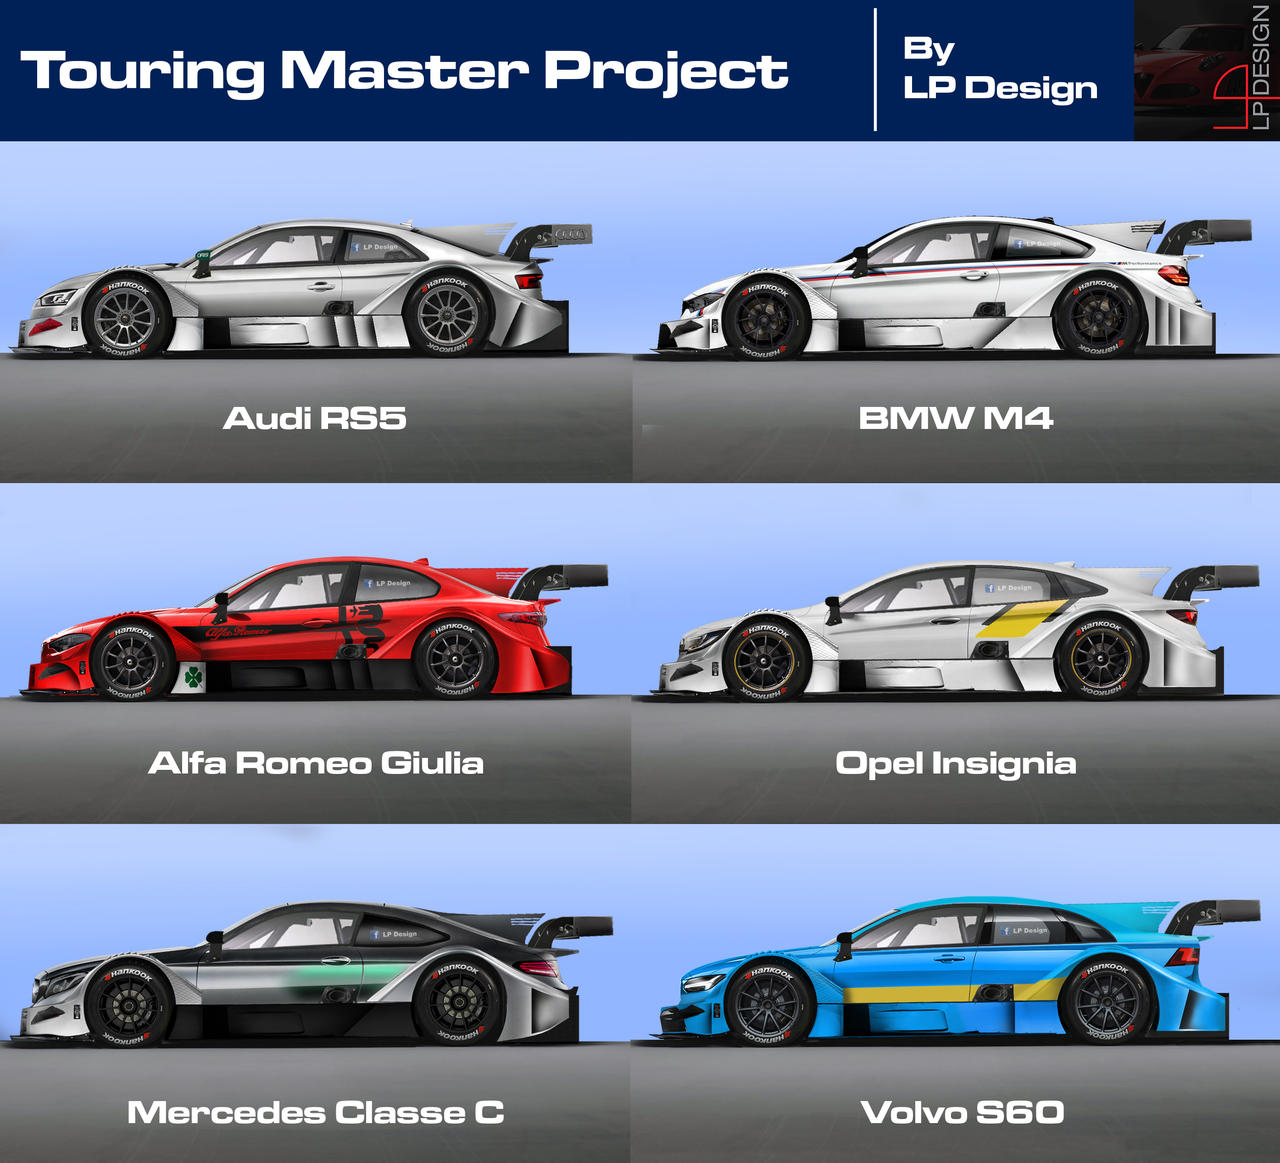 Dtm Project By Renxo93 On Deviantart